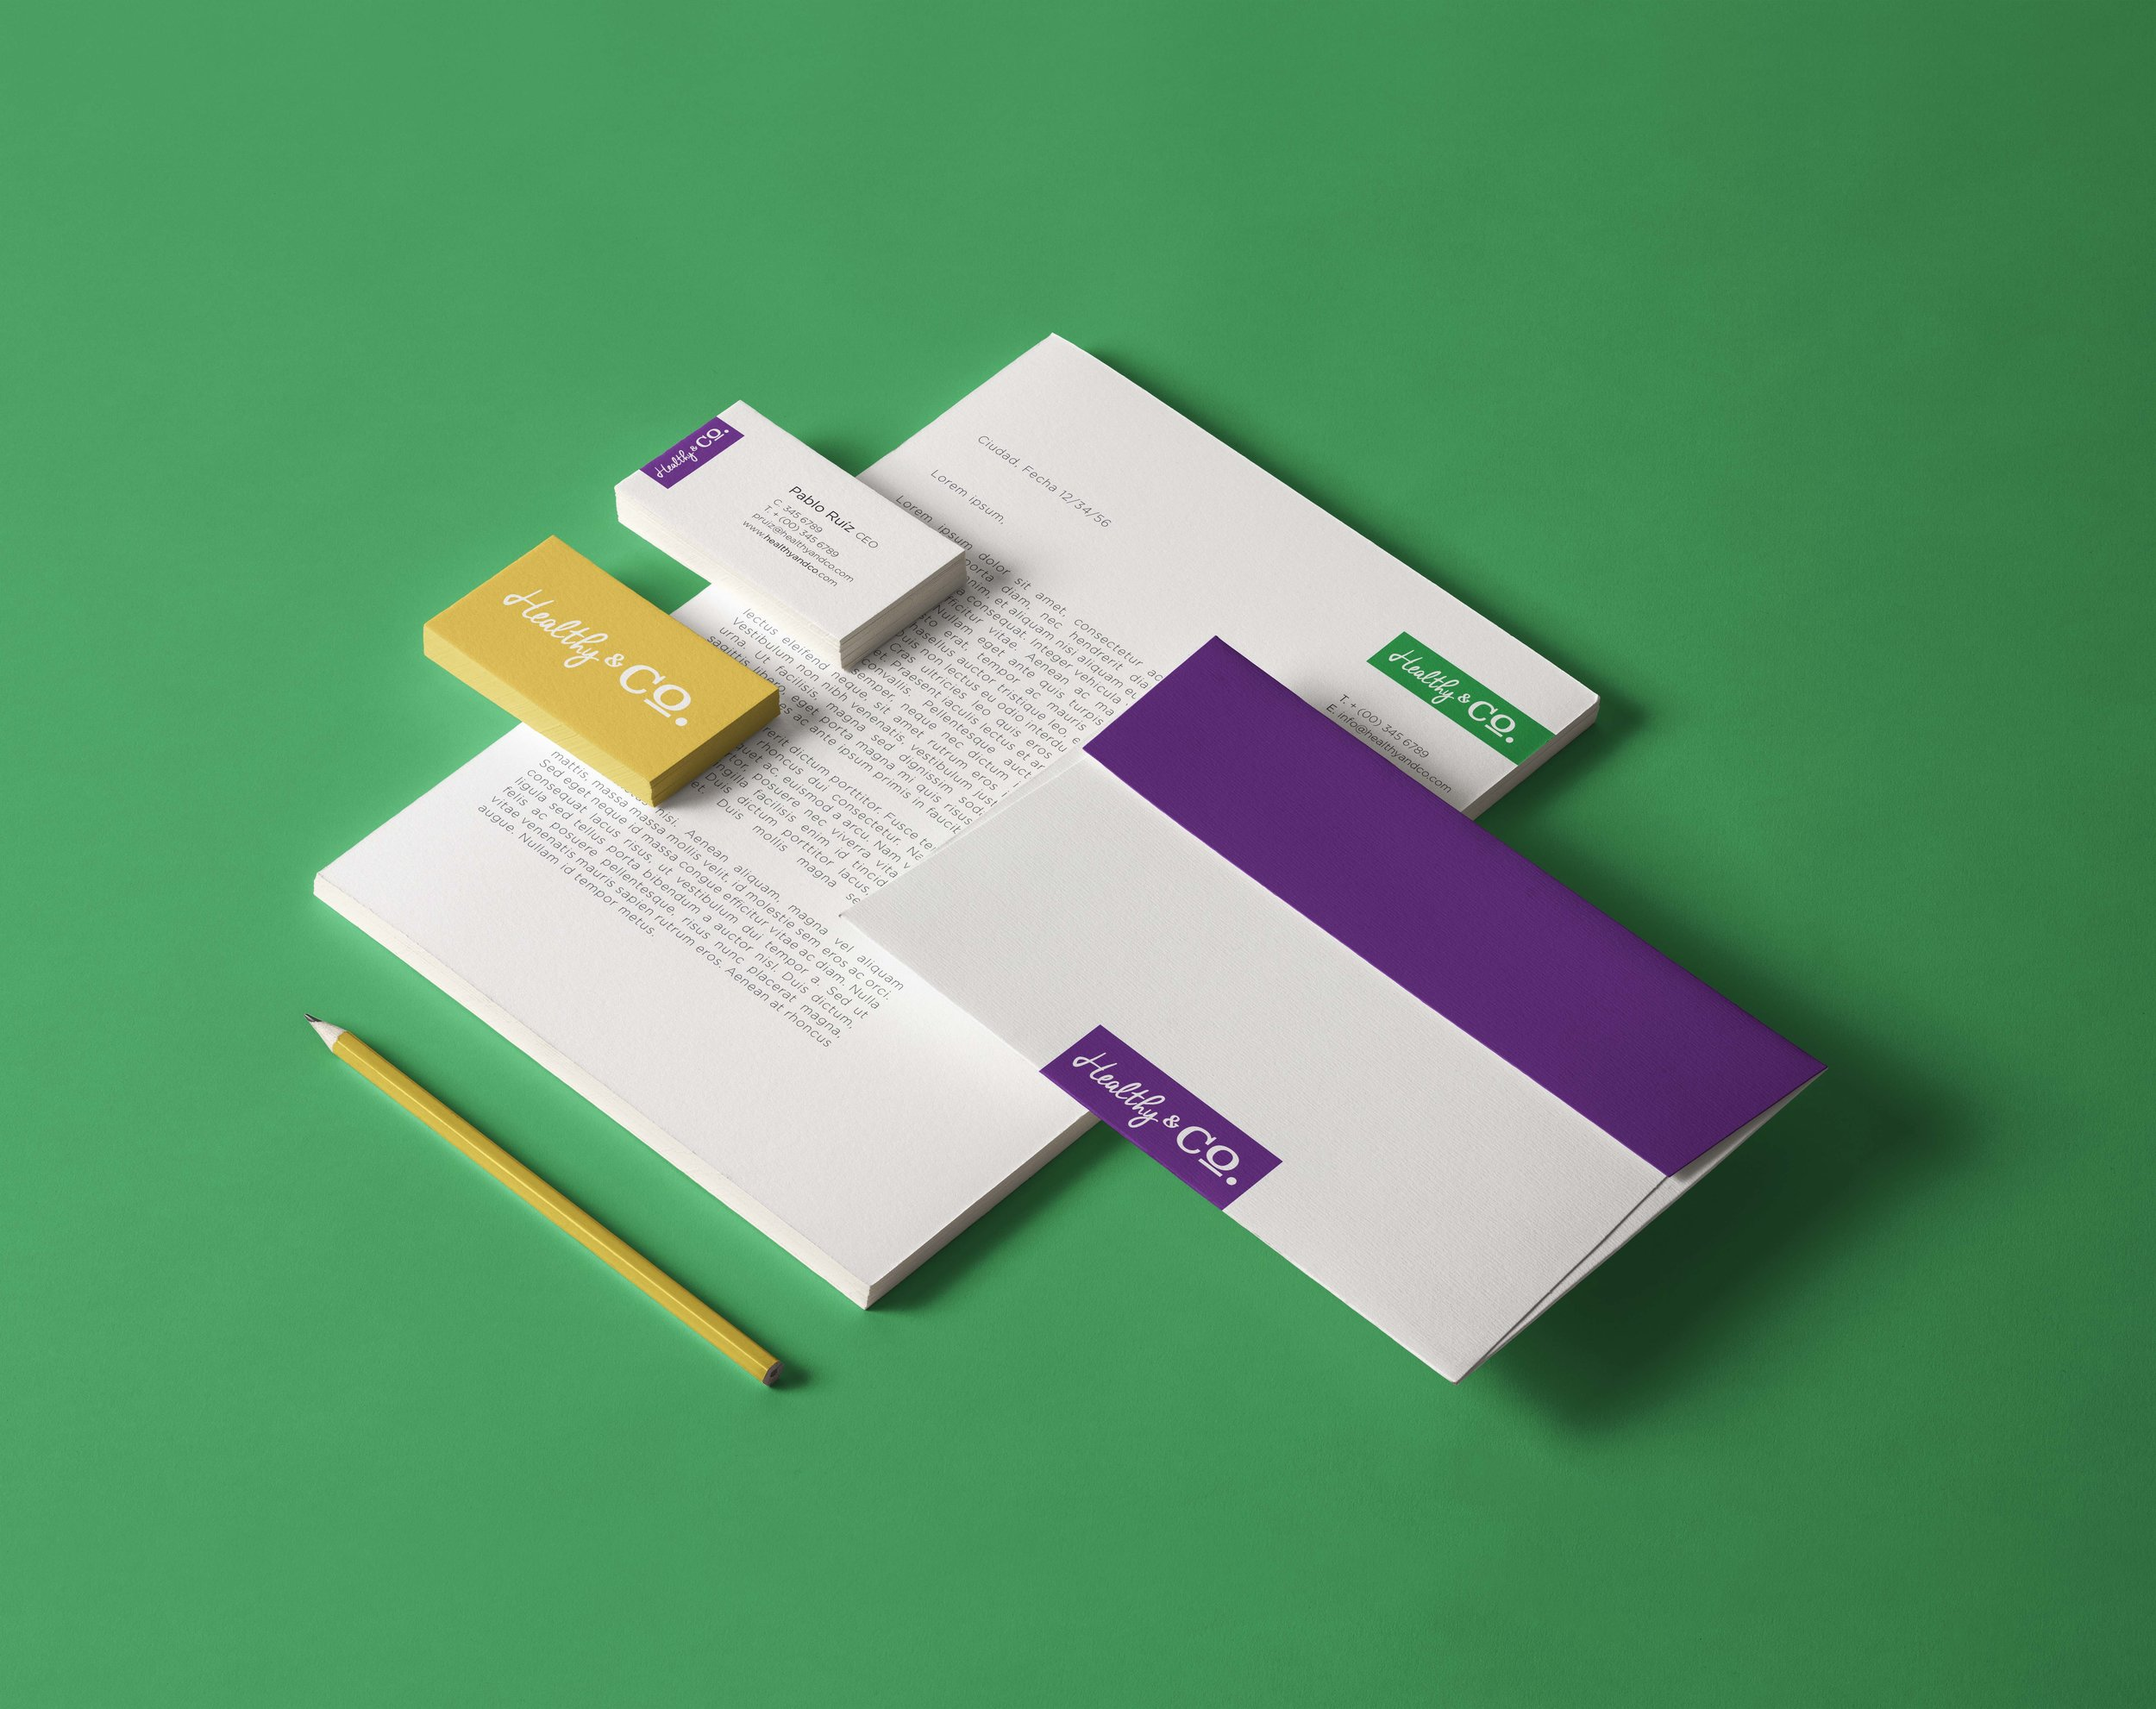 Essential-Business-Stationery-Mockup.jpg